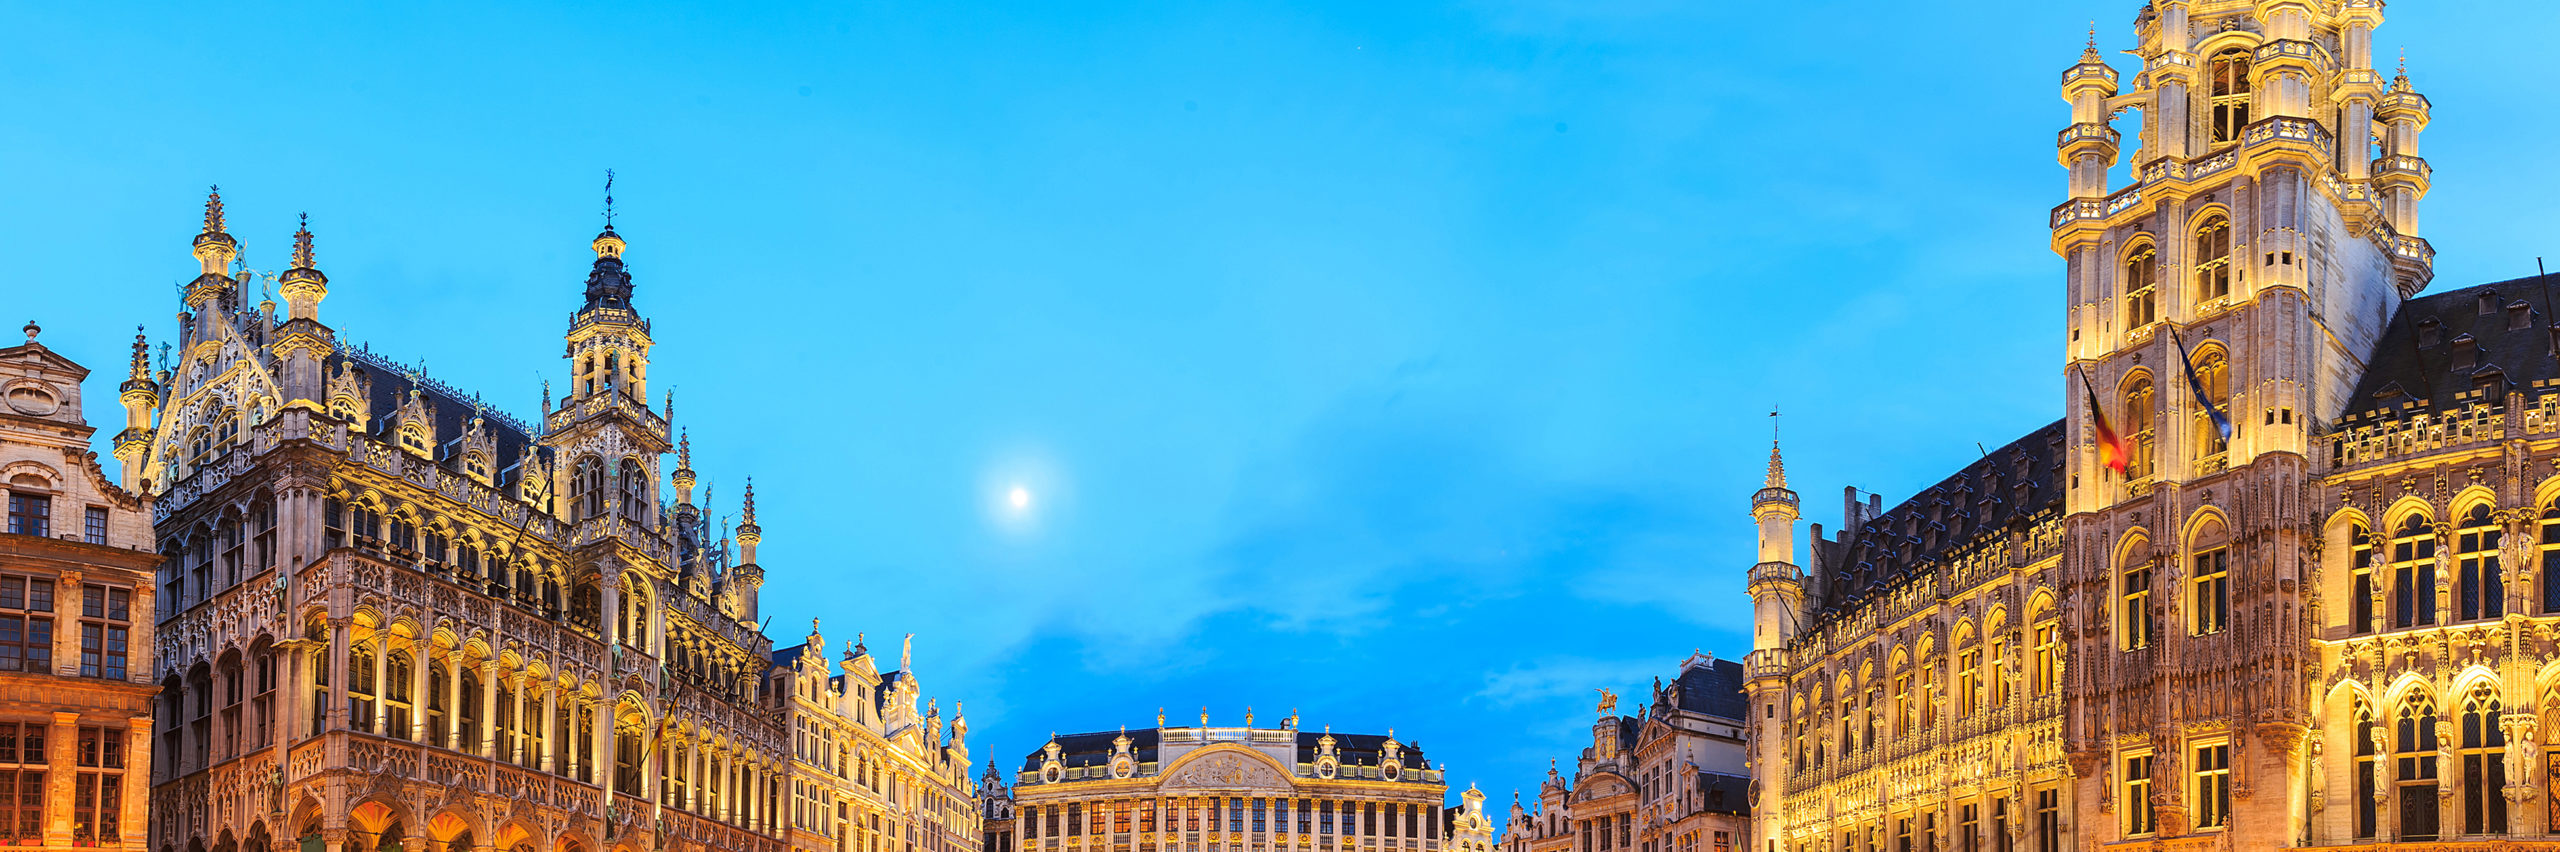 night scene of the Grand Place, the focal point of Brussels, Belgium. - Image